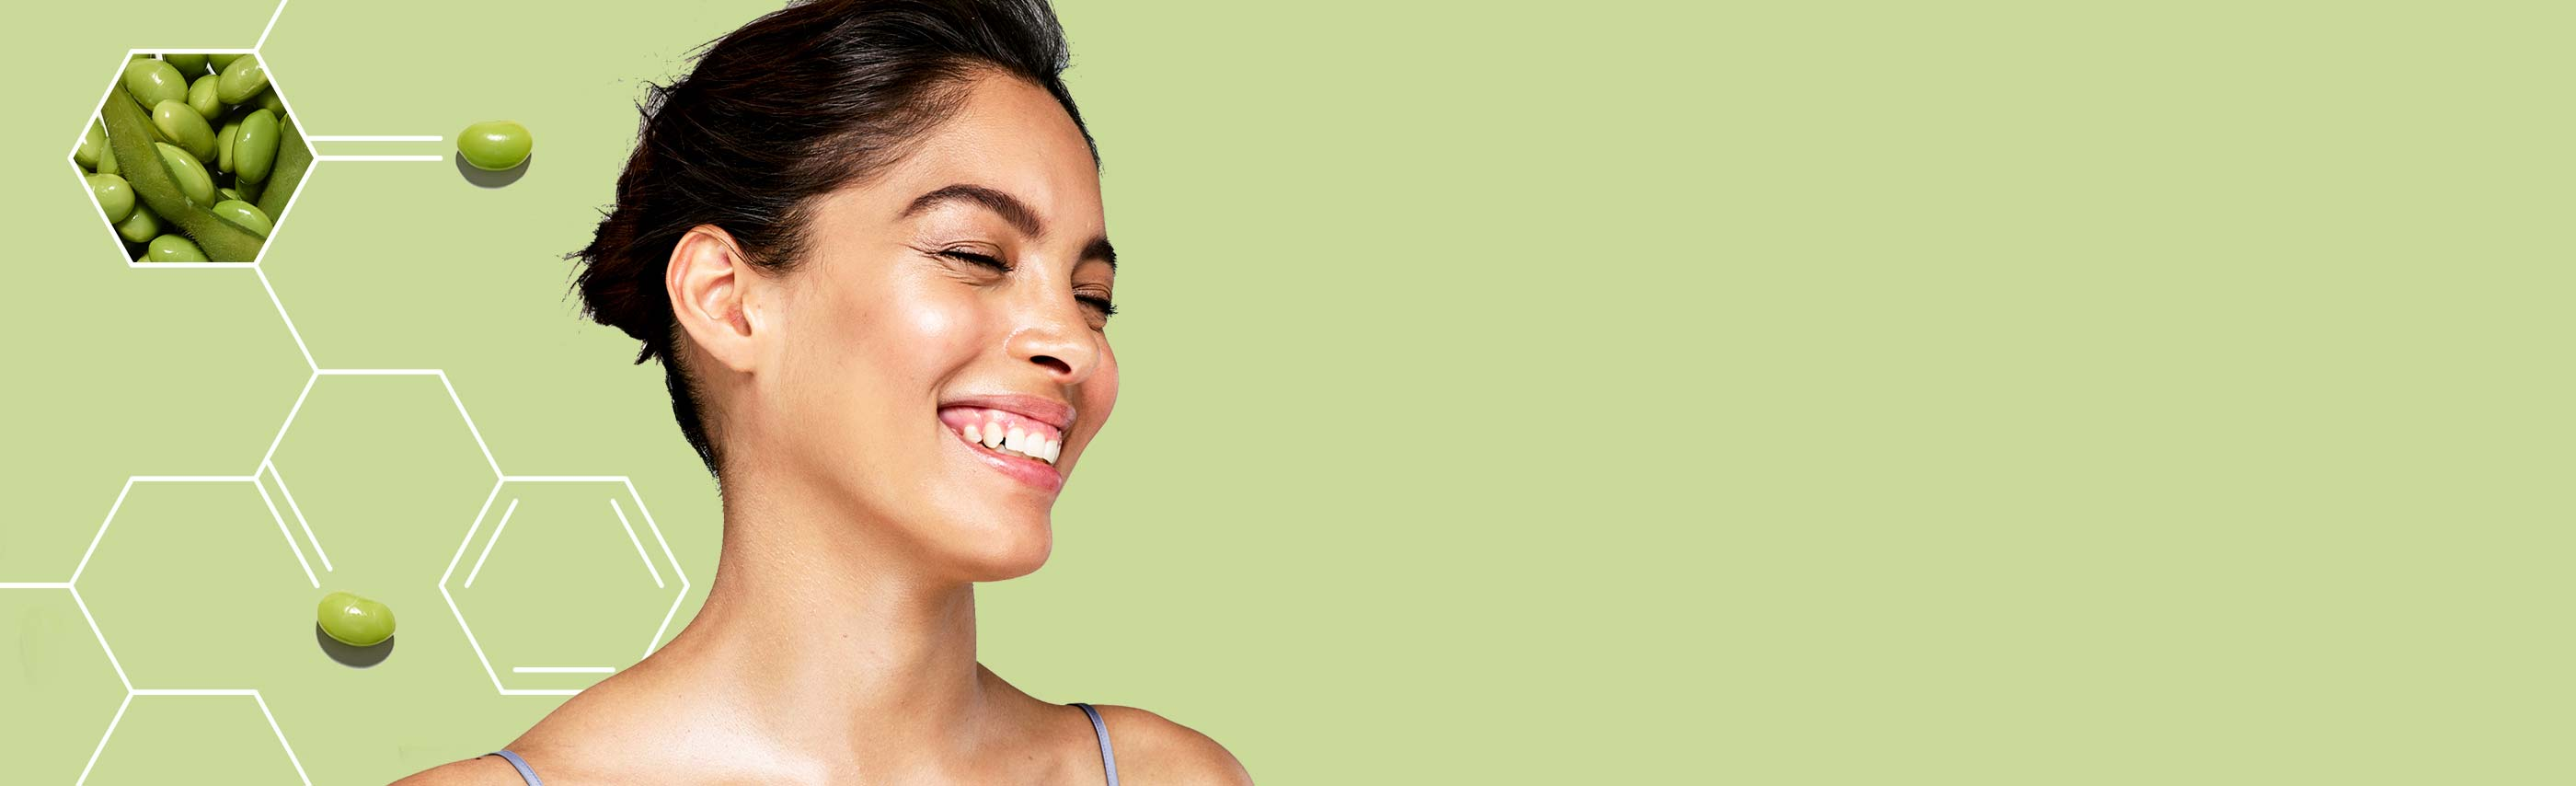 smiling woman with vibrant skin from Aveeno Positively Radiant